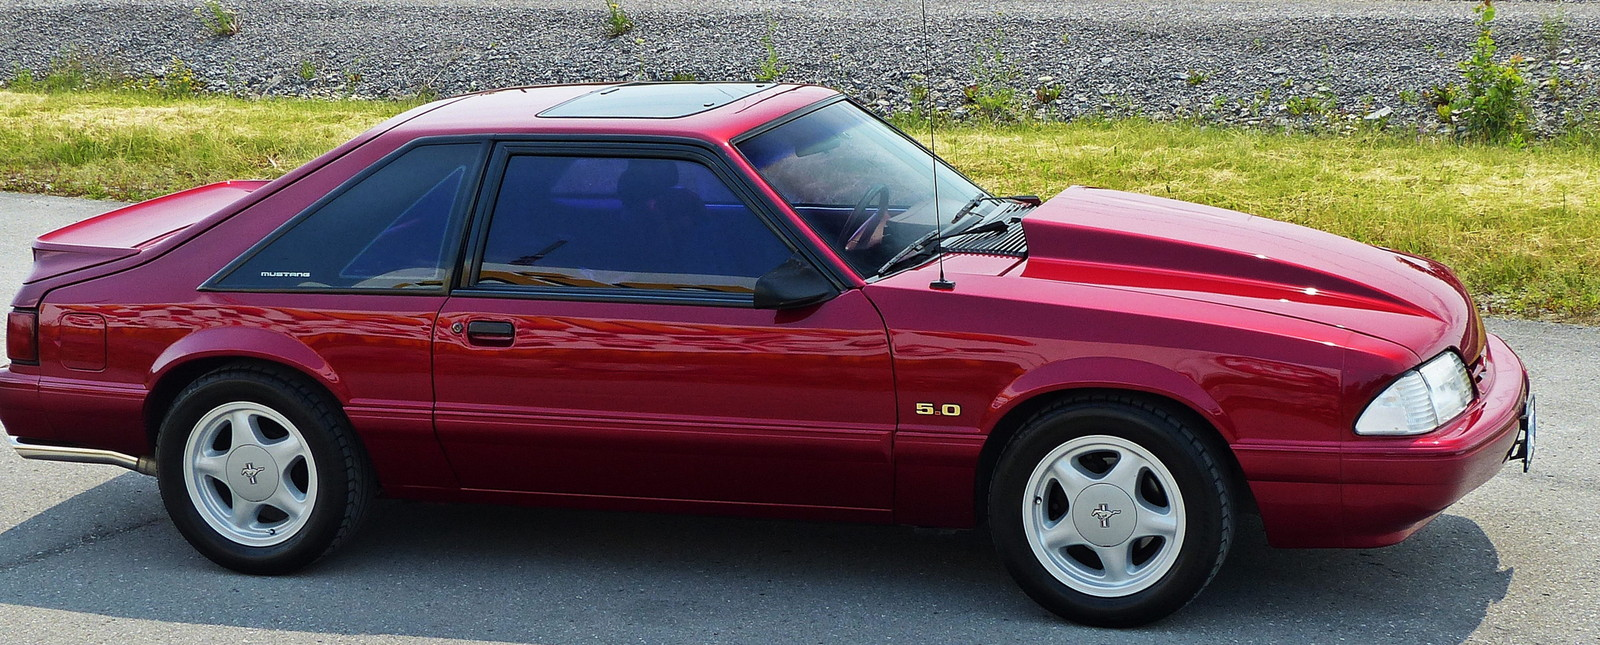 Deep Cherry 1993 Ford Mustang LX Hatchback